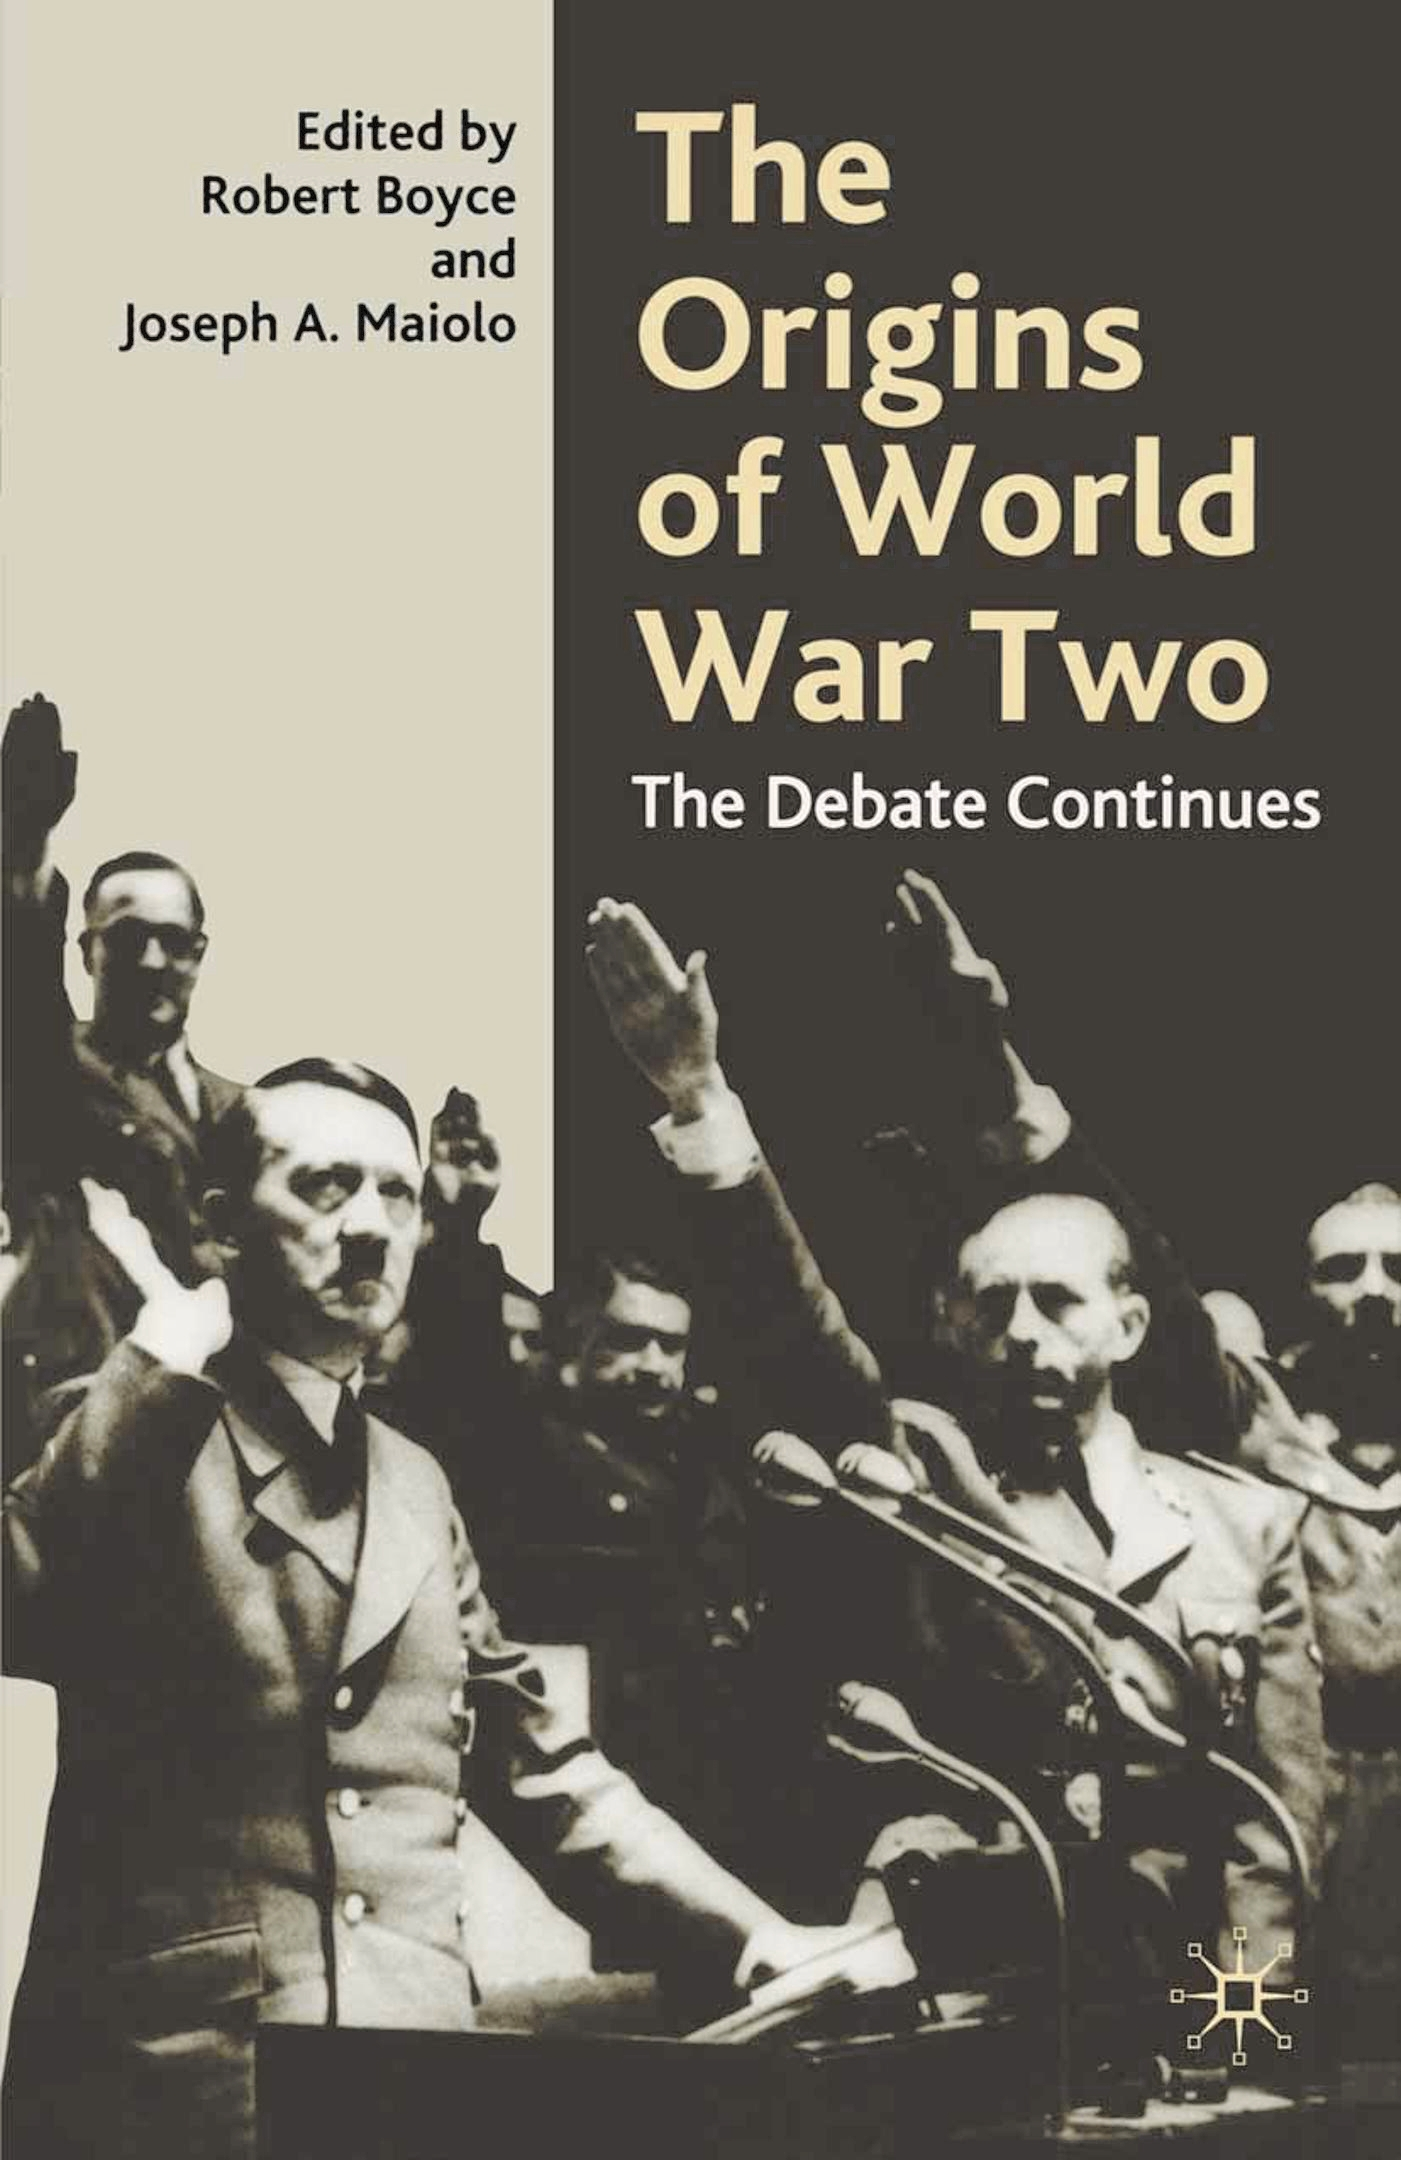 """origins of world war 2 Origins of world war ii - authorstream presentation headline: """"i vow to restore germany to its former greatness"""" : headline: """"i vow to restore germany to its former greatness"""" austrian-born adolf hitler makes this promise to the german people hitler was the leader of the nazi political party appointed chancellor of germany in 1933."""